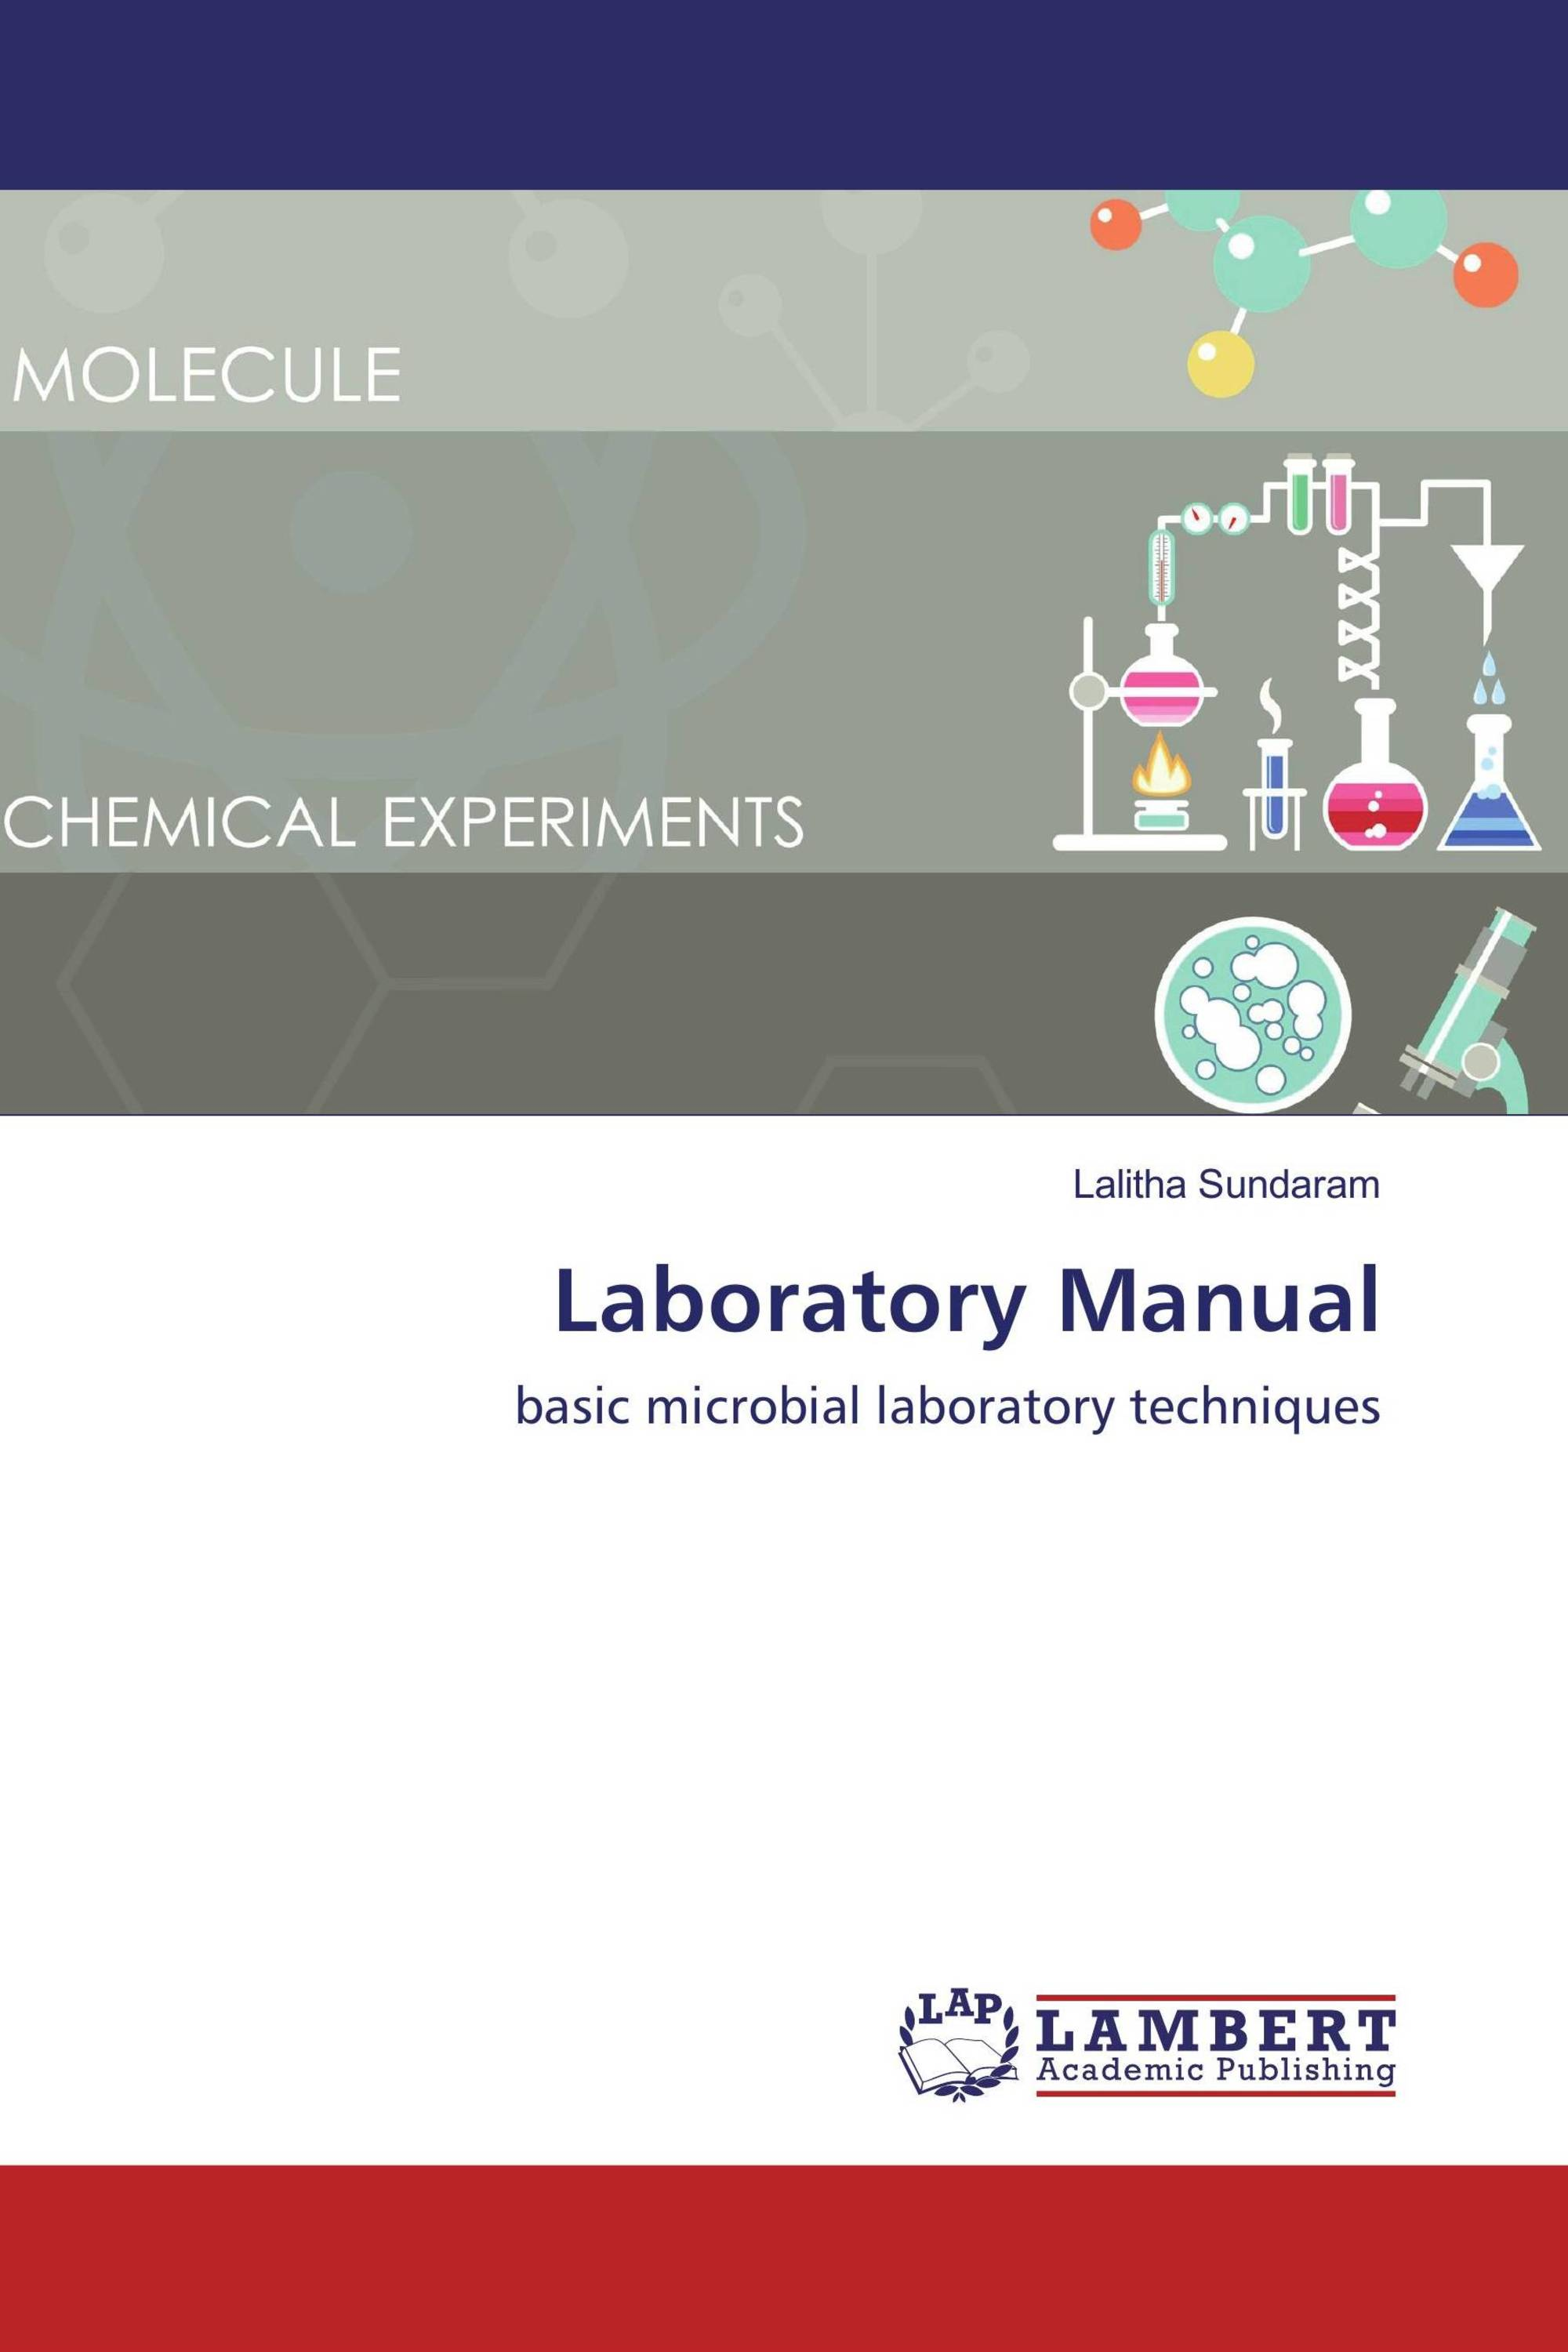 basic laboratory technique essay Planning allows a lab manager to know where the lab is going 2 organizing is also an important job for a lab manager as he or she determines who does which project and technique, manages the timelines and budgets for multiple projects, and keeps current with research in the fields.